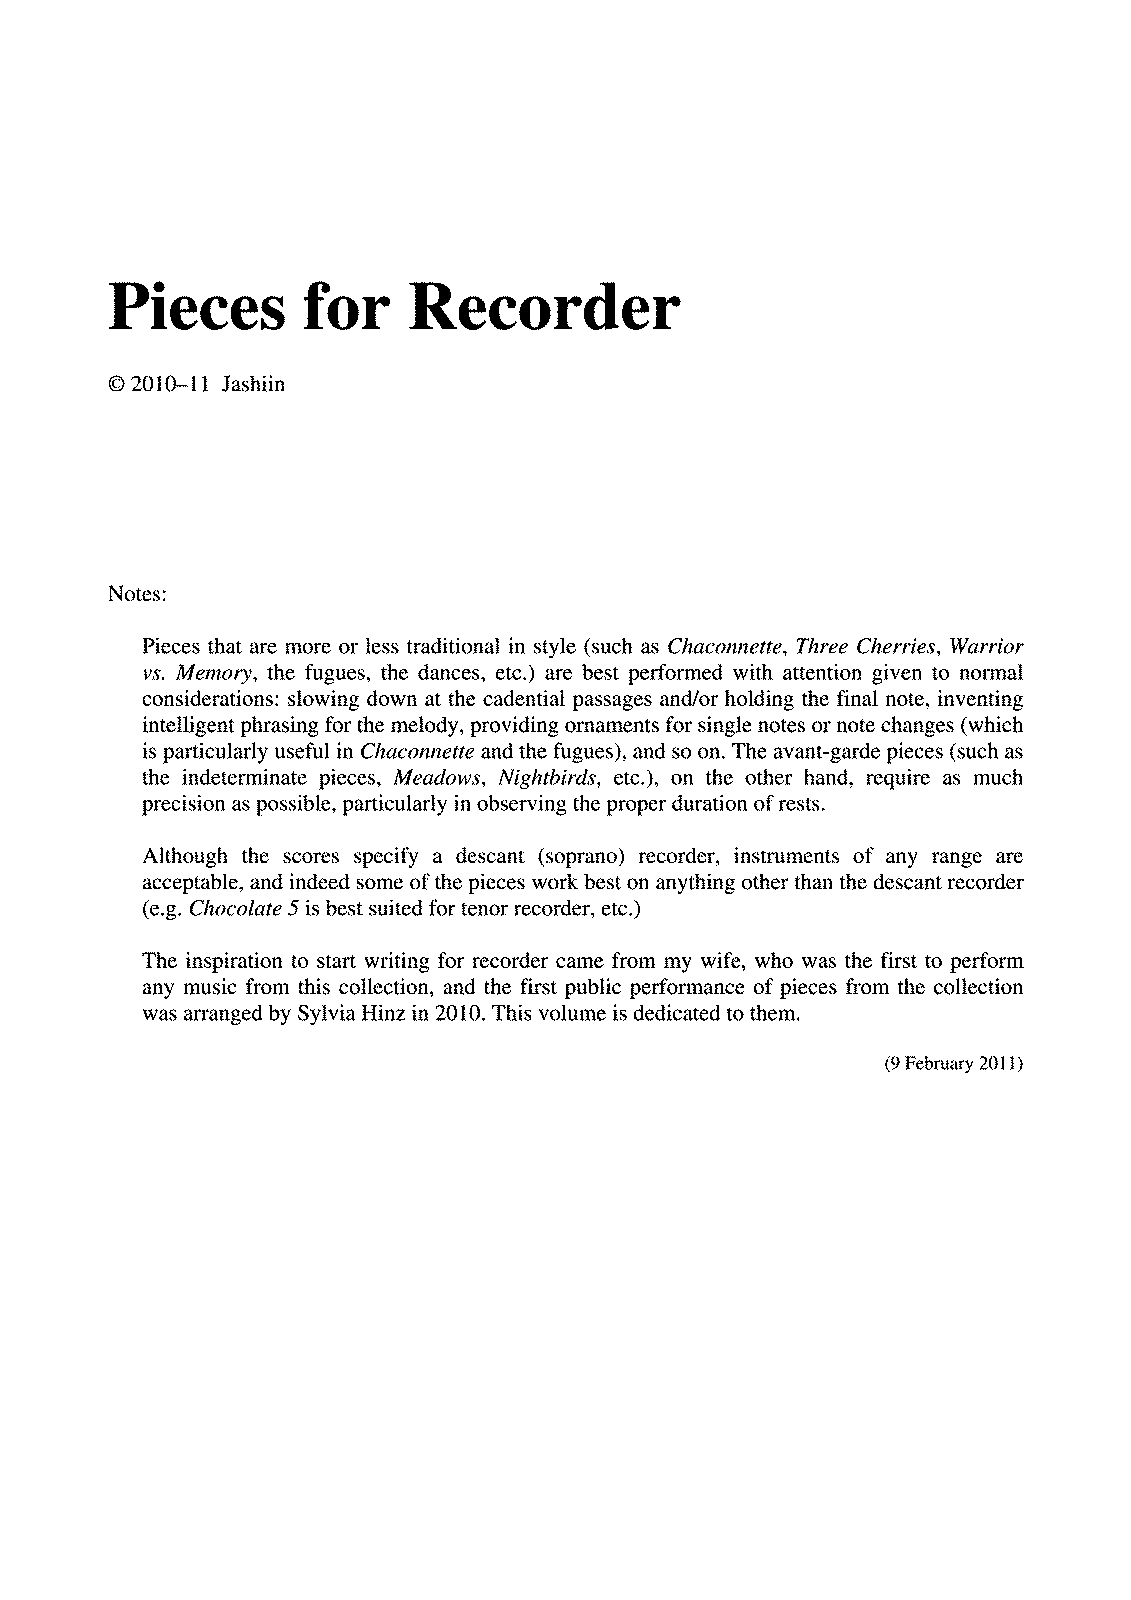 PMLP190561-pieces-for-recorder.pdf